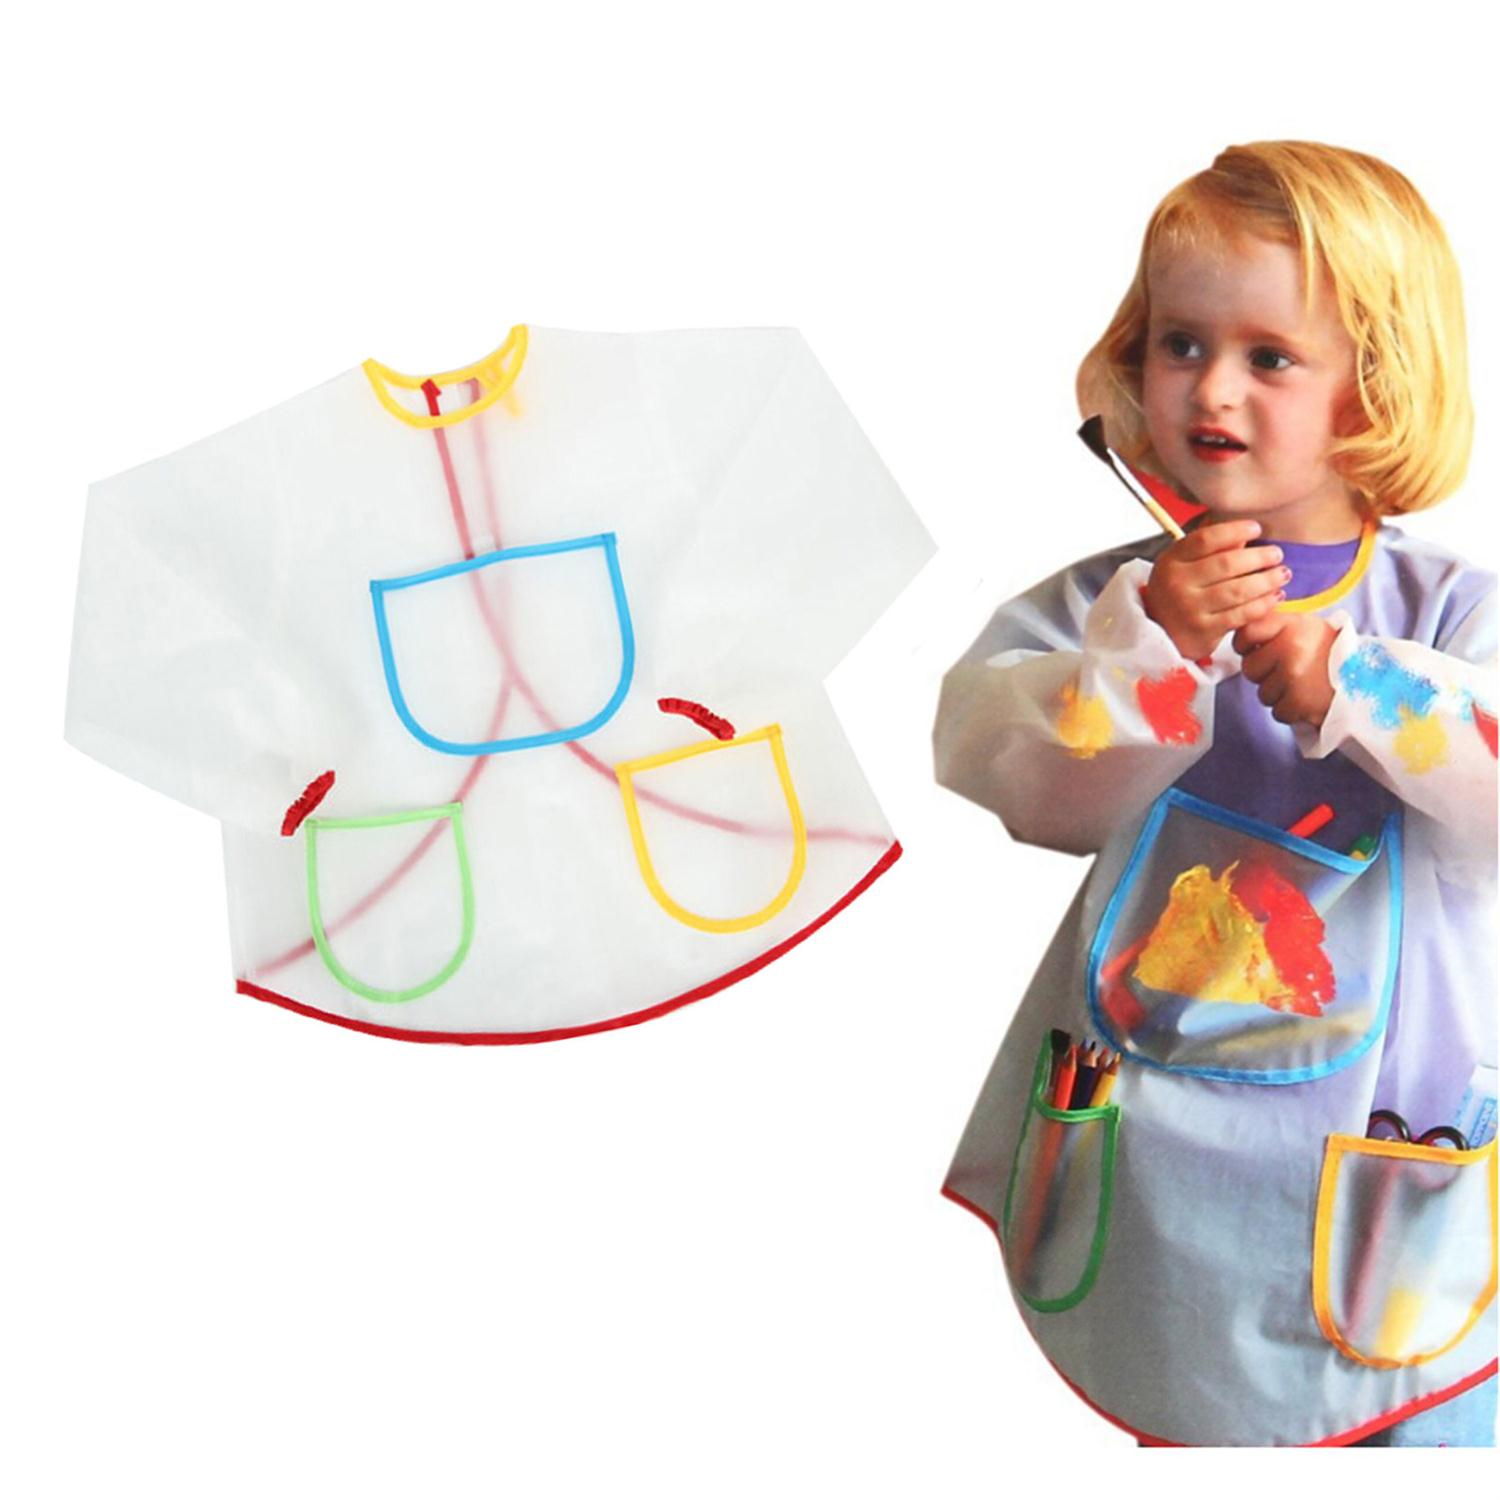 Multifunctional Kids Baby Apron Smock with 3 Pockets Painting Drawing Kids Home Apron Anti-Wear Waterproof Costume Crafts LW154(China (Mainland))